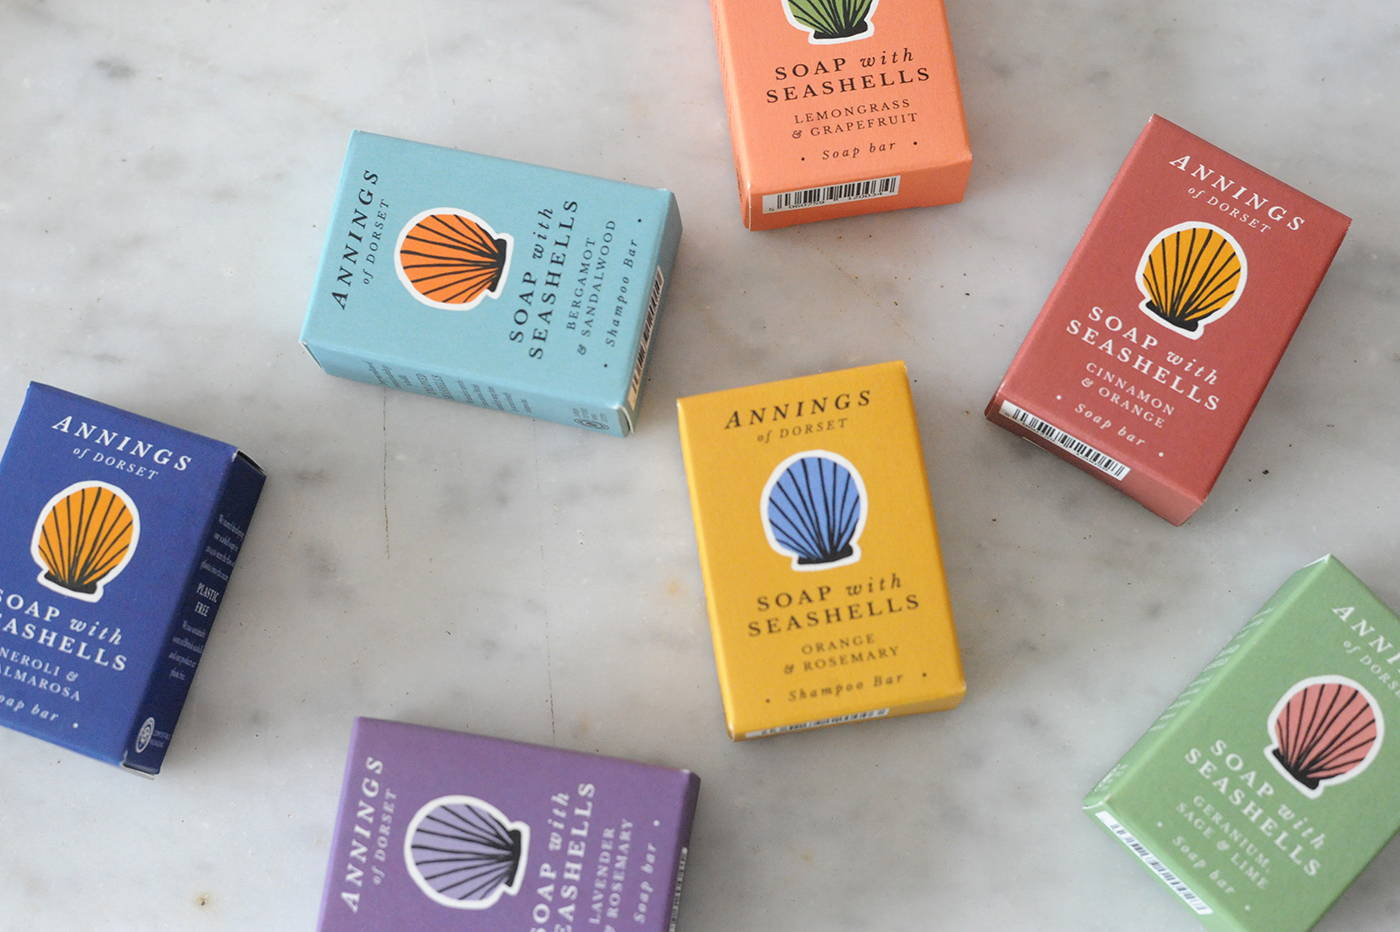 A scattered picture of Annings soaps in their colourful packaging.